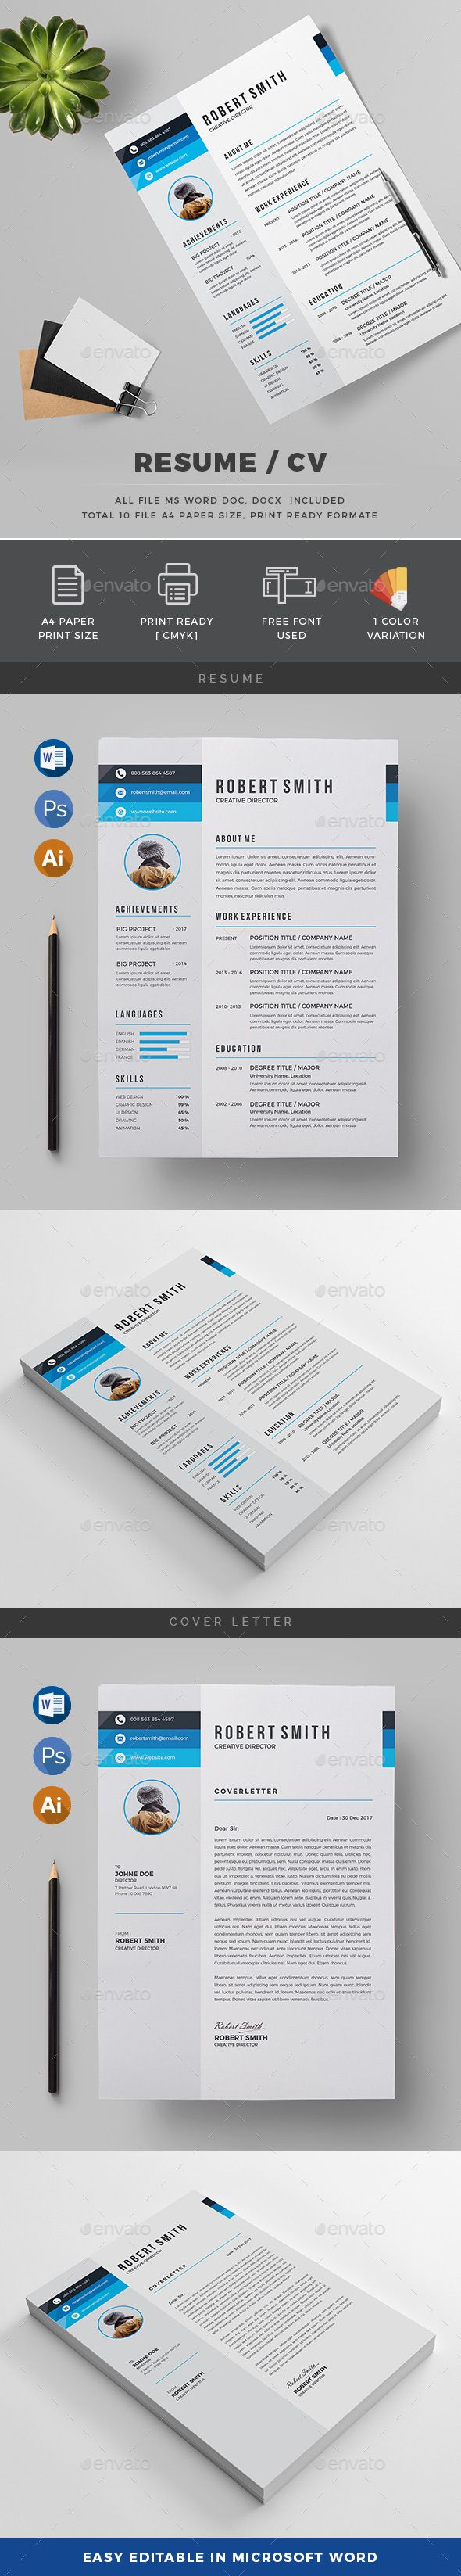 Resume CV | Resume cv, Template and Cv template